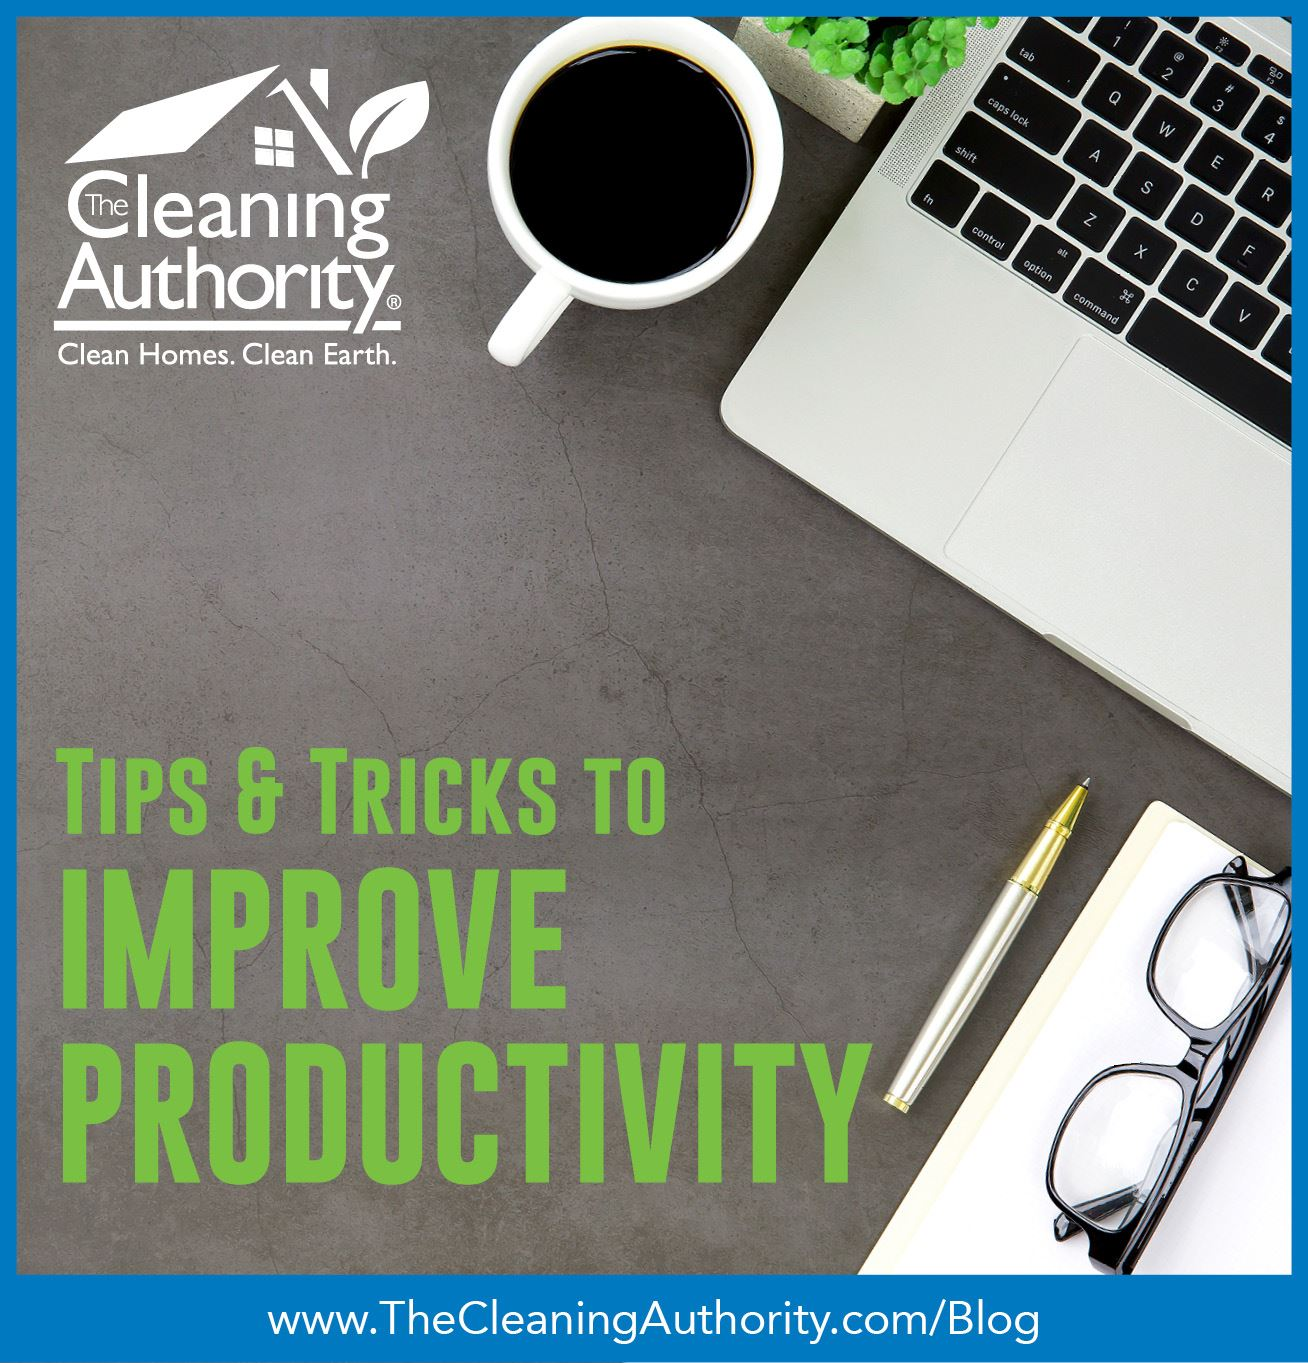 Tips & Tricks to Improve Productivity